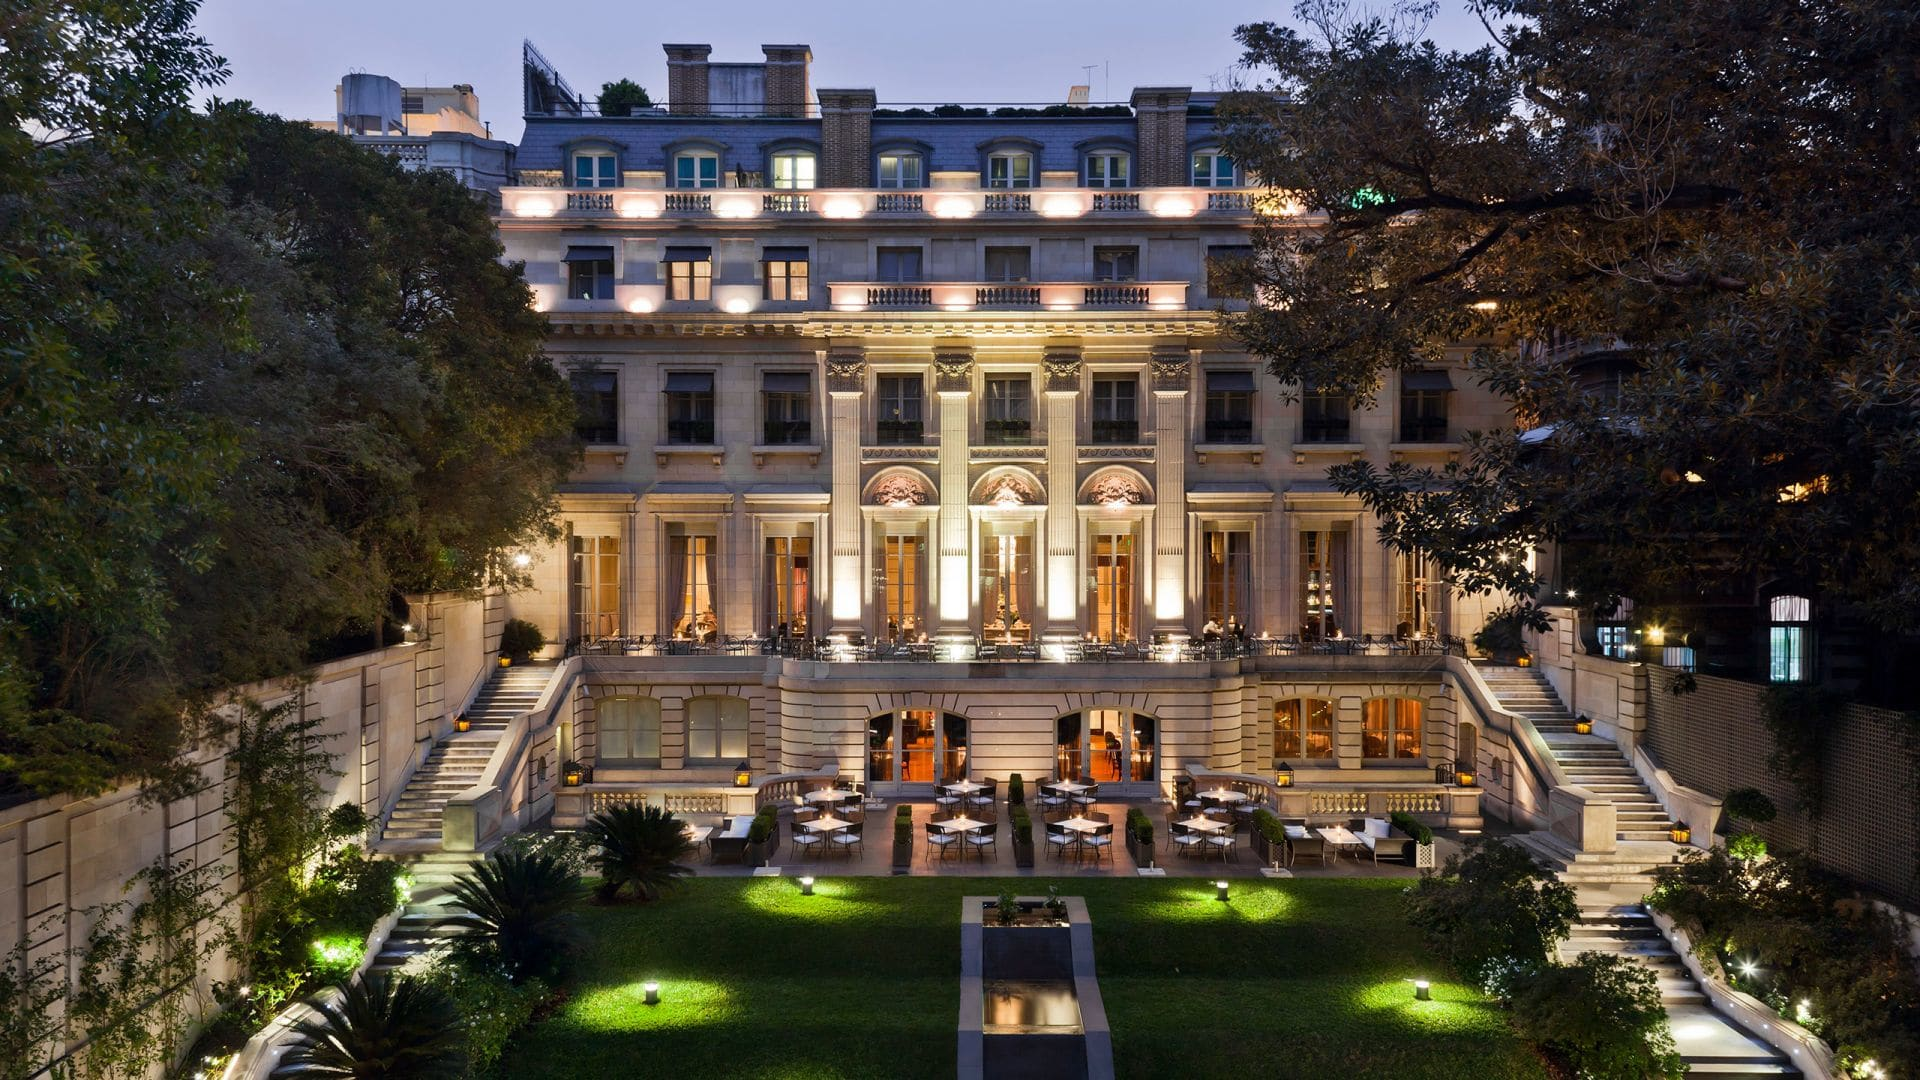 Park Hyatt Buenos Aires  sits amid the stunning French heritage area of Recoleta. Unveil uncommon experiences within a harmonious architecture combination of the restored Neoclassical Palace and the Posadas contemporary building. The complex is connected by an eclectic underground art gallery and a secluded garden with breath-taking terraces where one can delight in haute-cuisine. The grandeur of the hotel interiors with lavish décor and the exceptional personal service offer an enriching atmosphere in the heart of Buenos Aires.